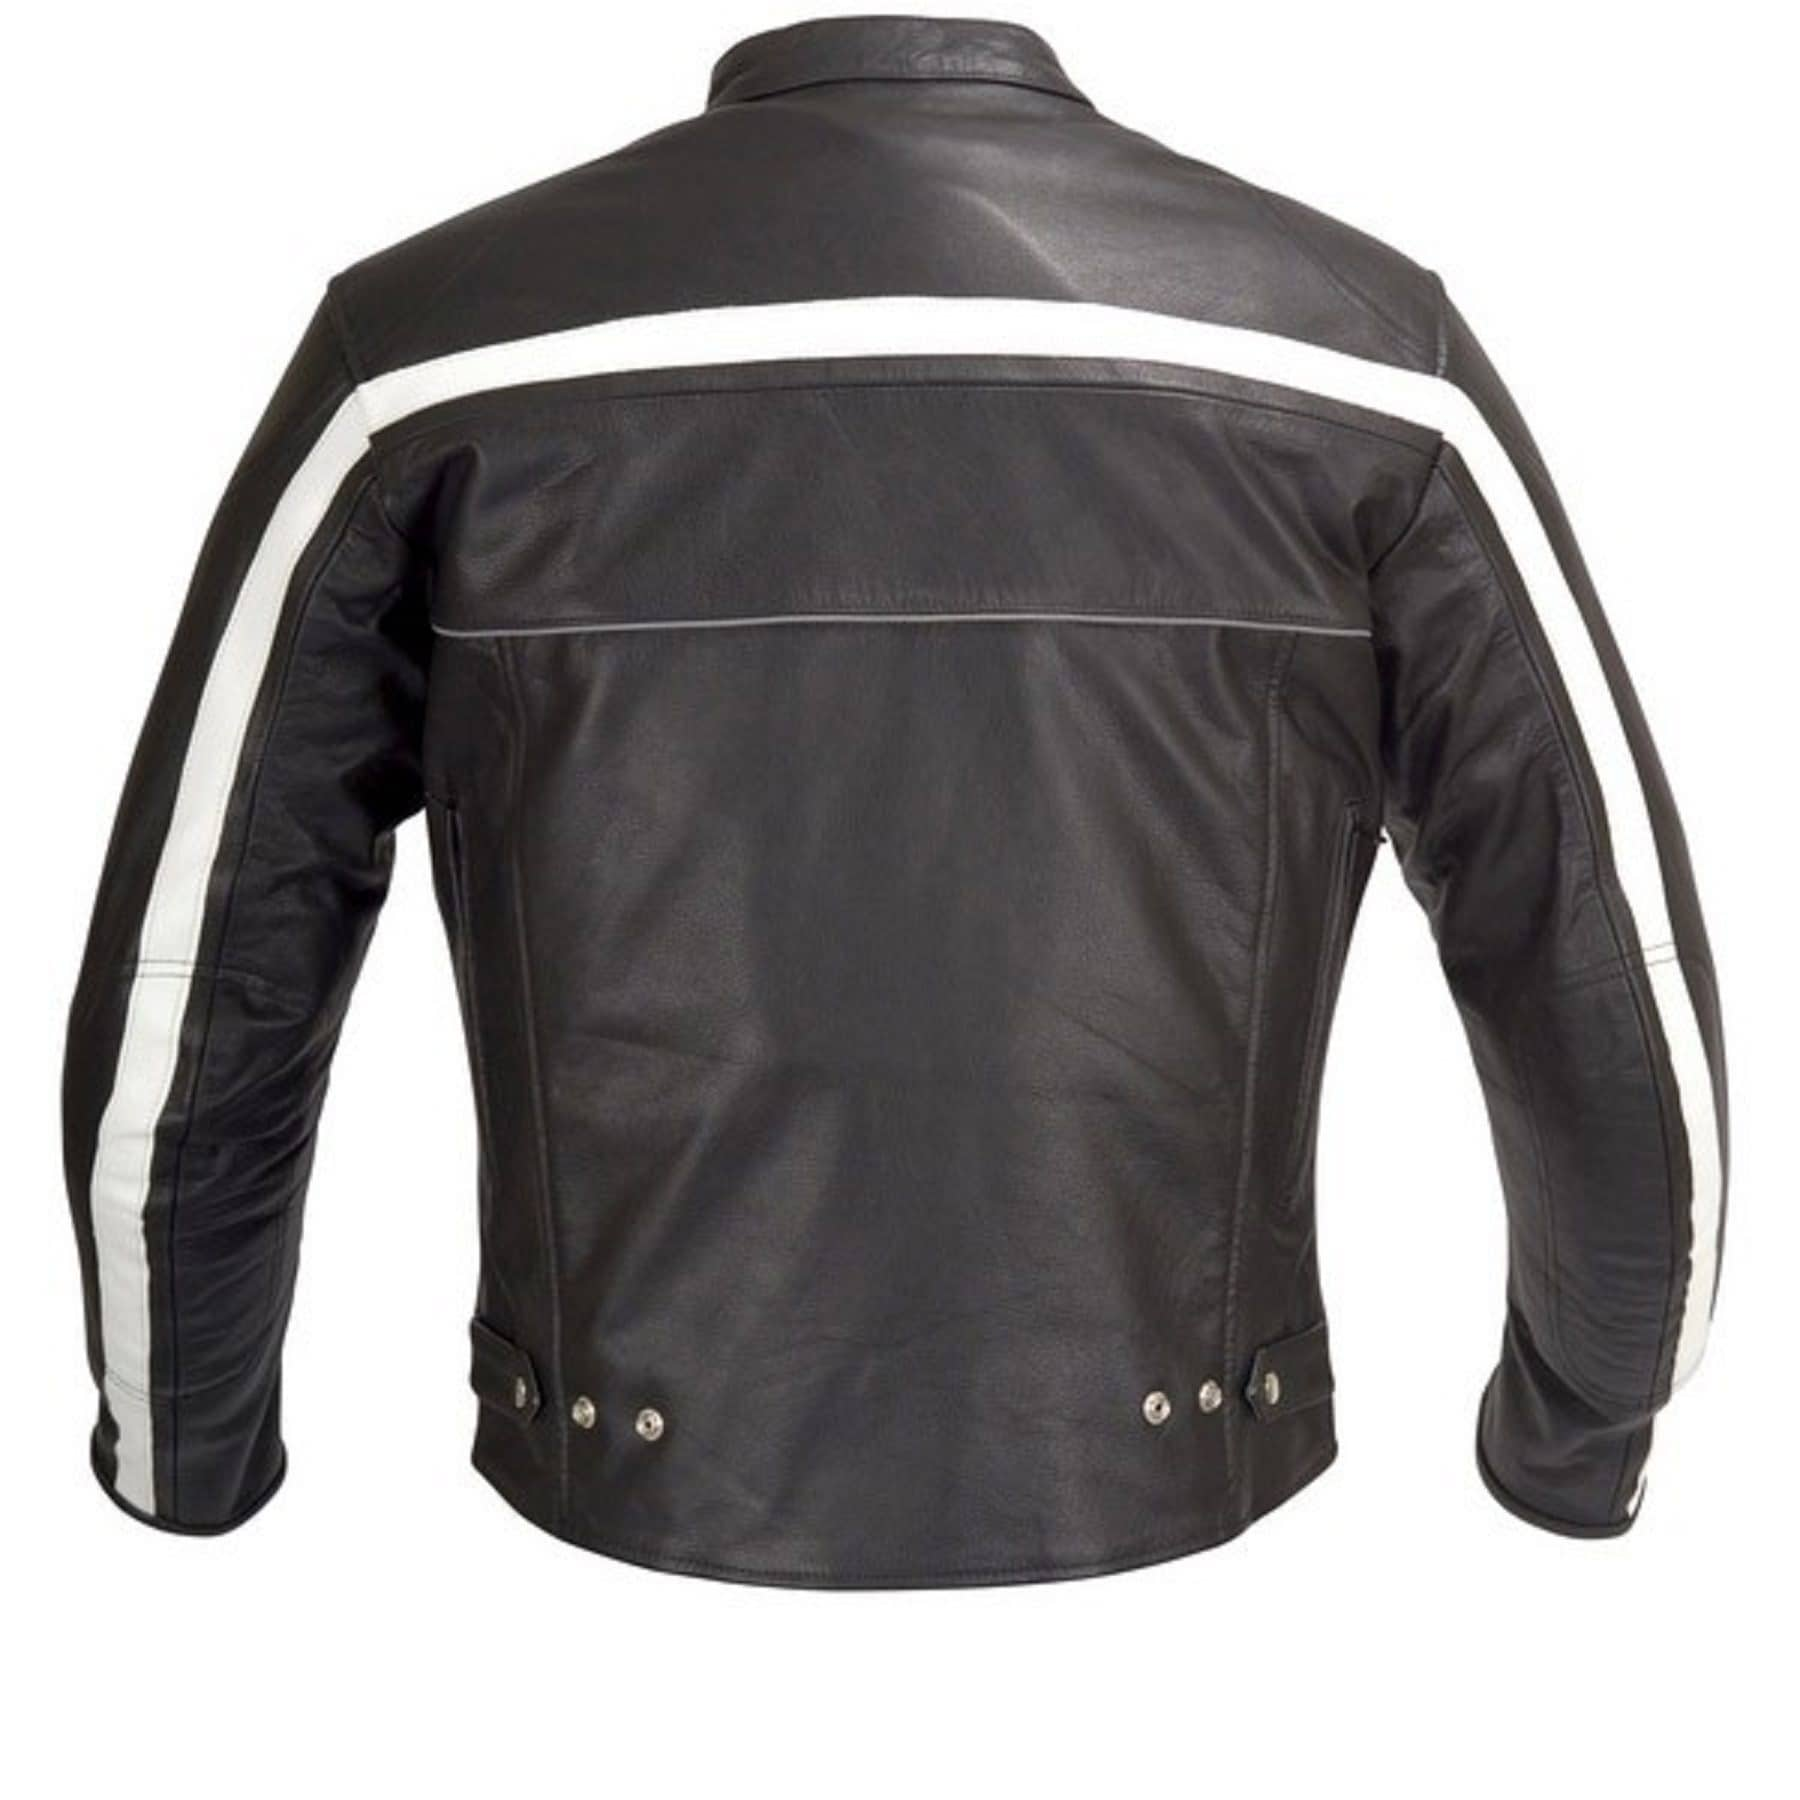 MEN/'S MOTORCYCLE REFLECTIVE SCOOTER TEXTILE MESH JACKET W//PROTECTED ARMORS VENTS